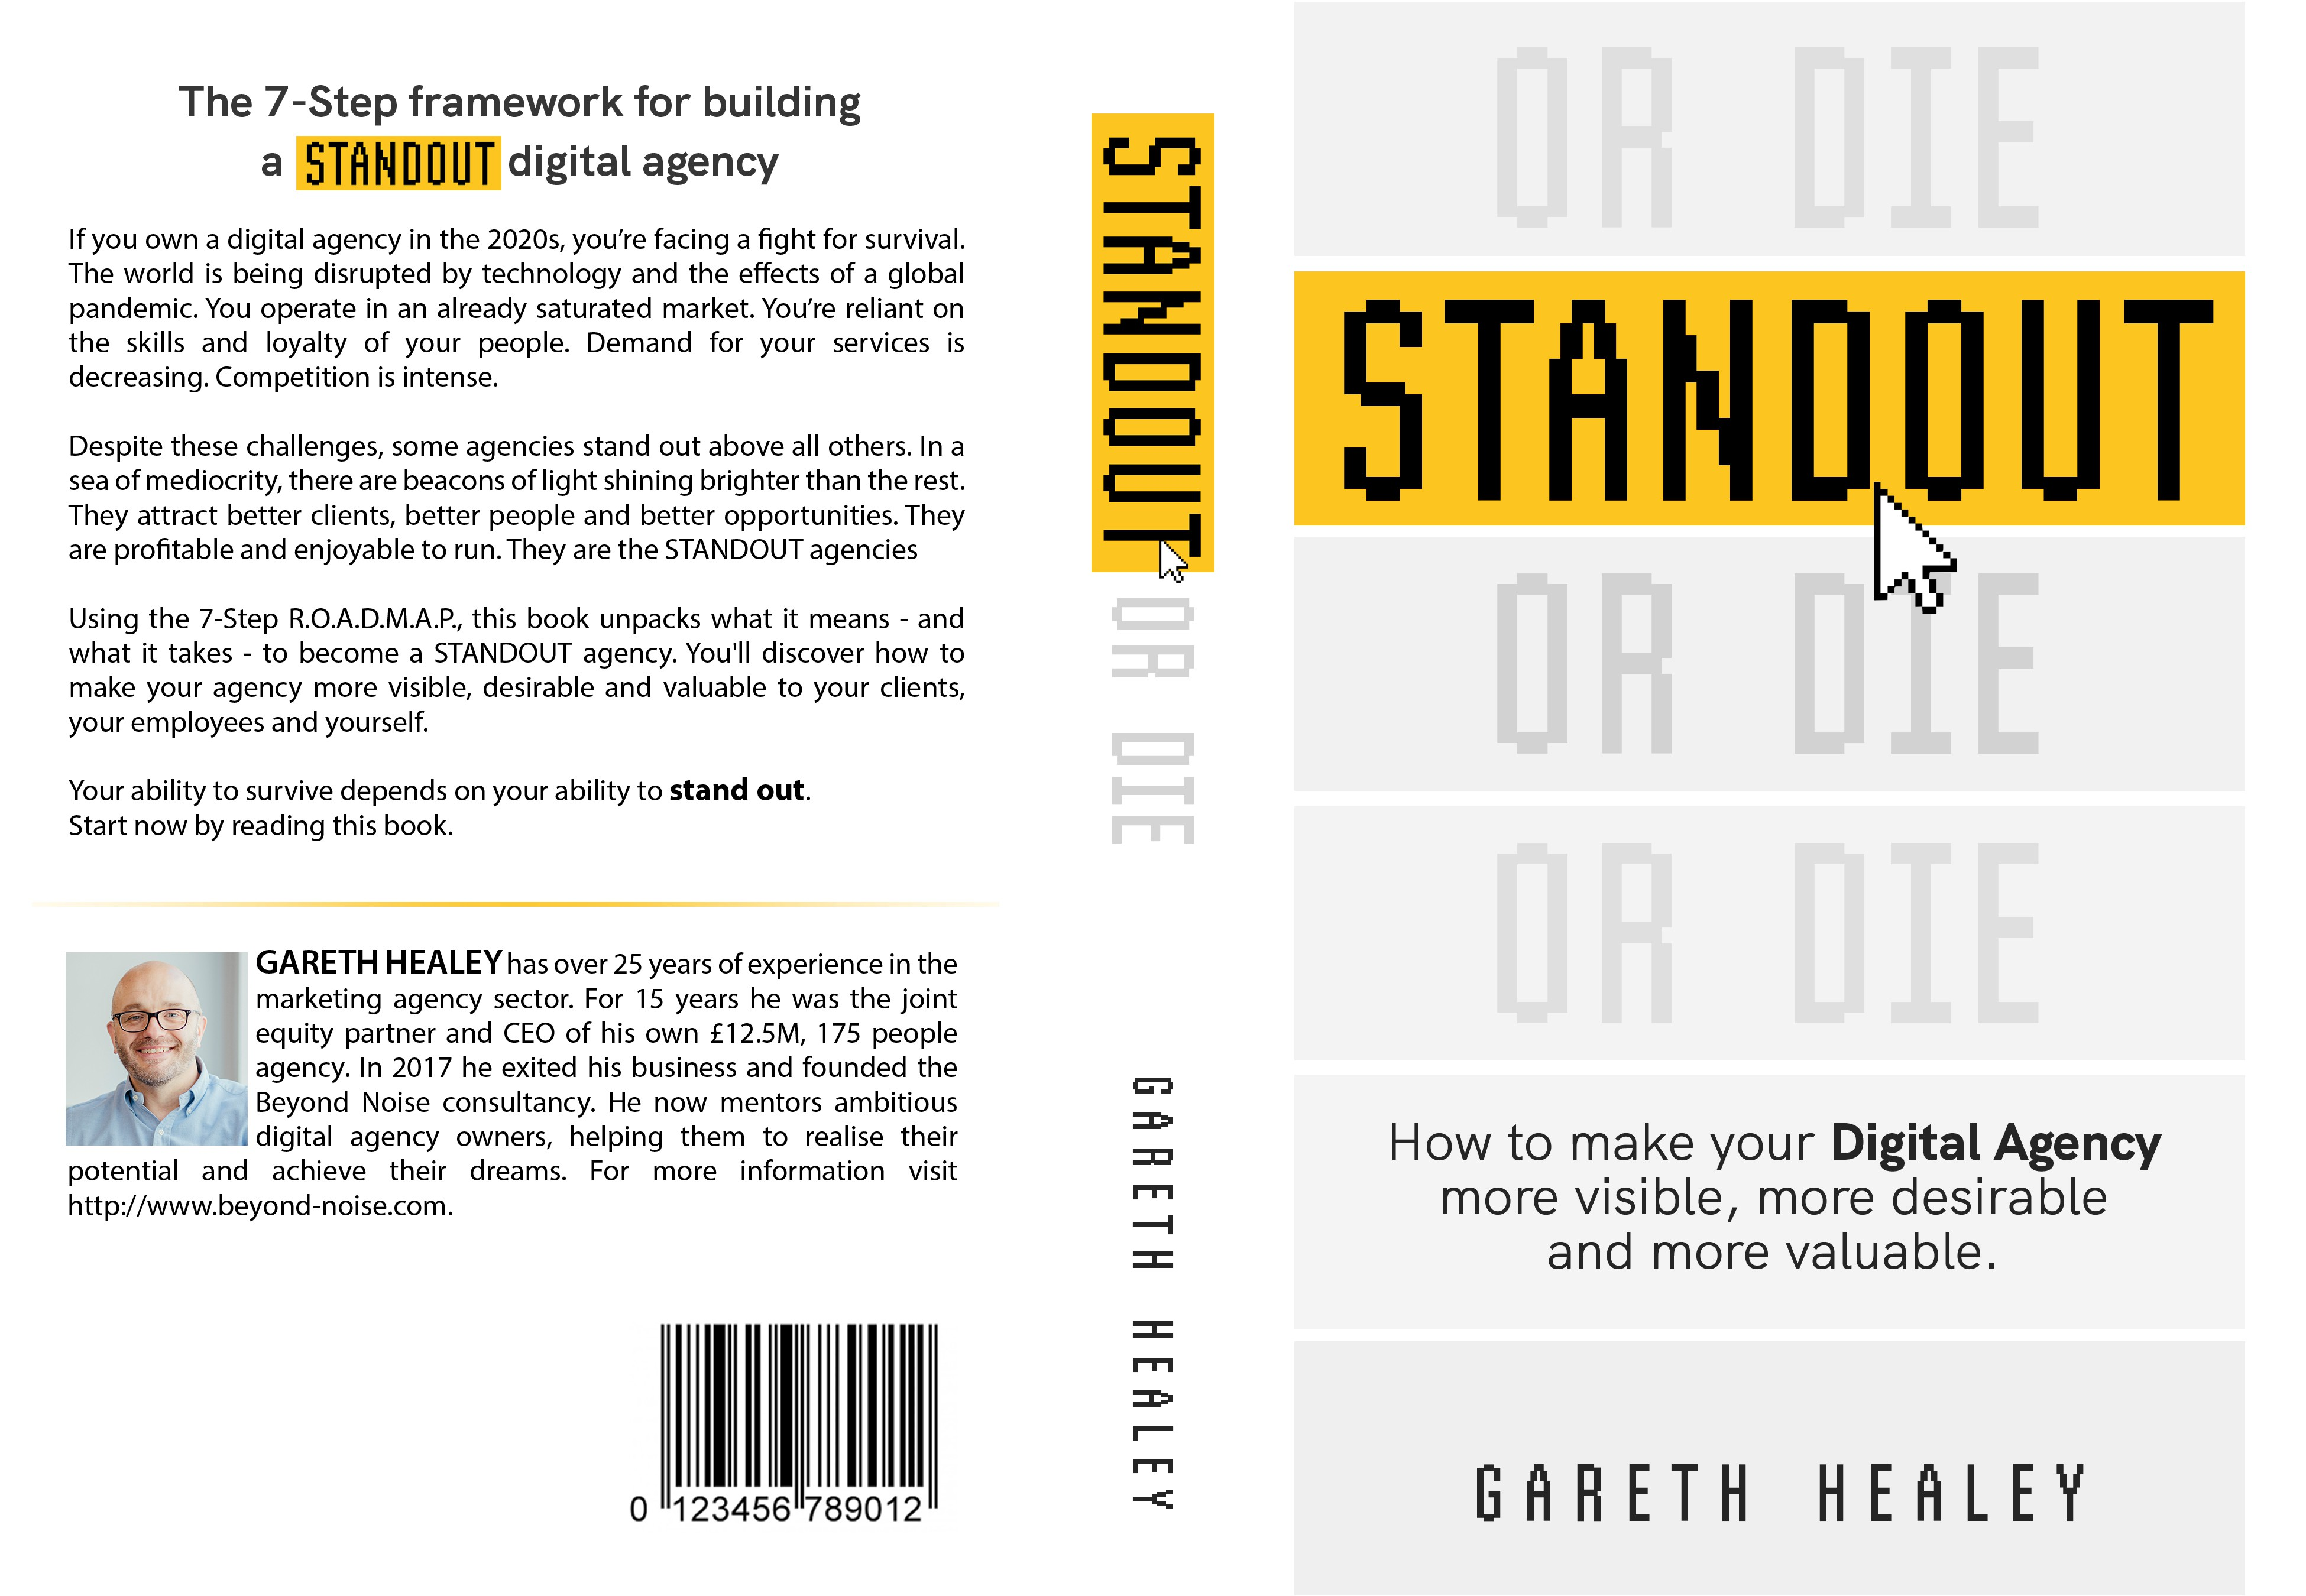 Book Cover design for business book aimed at digital marketing agency owners